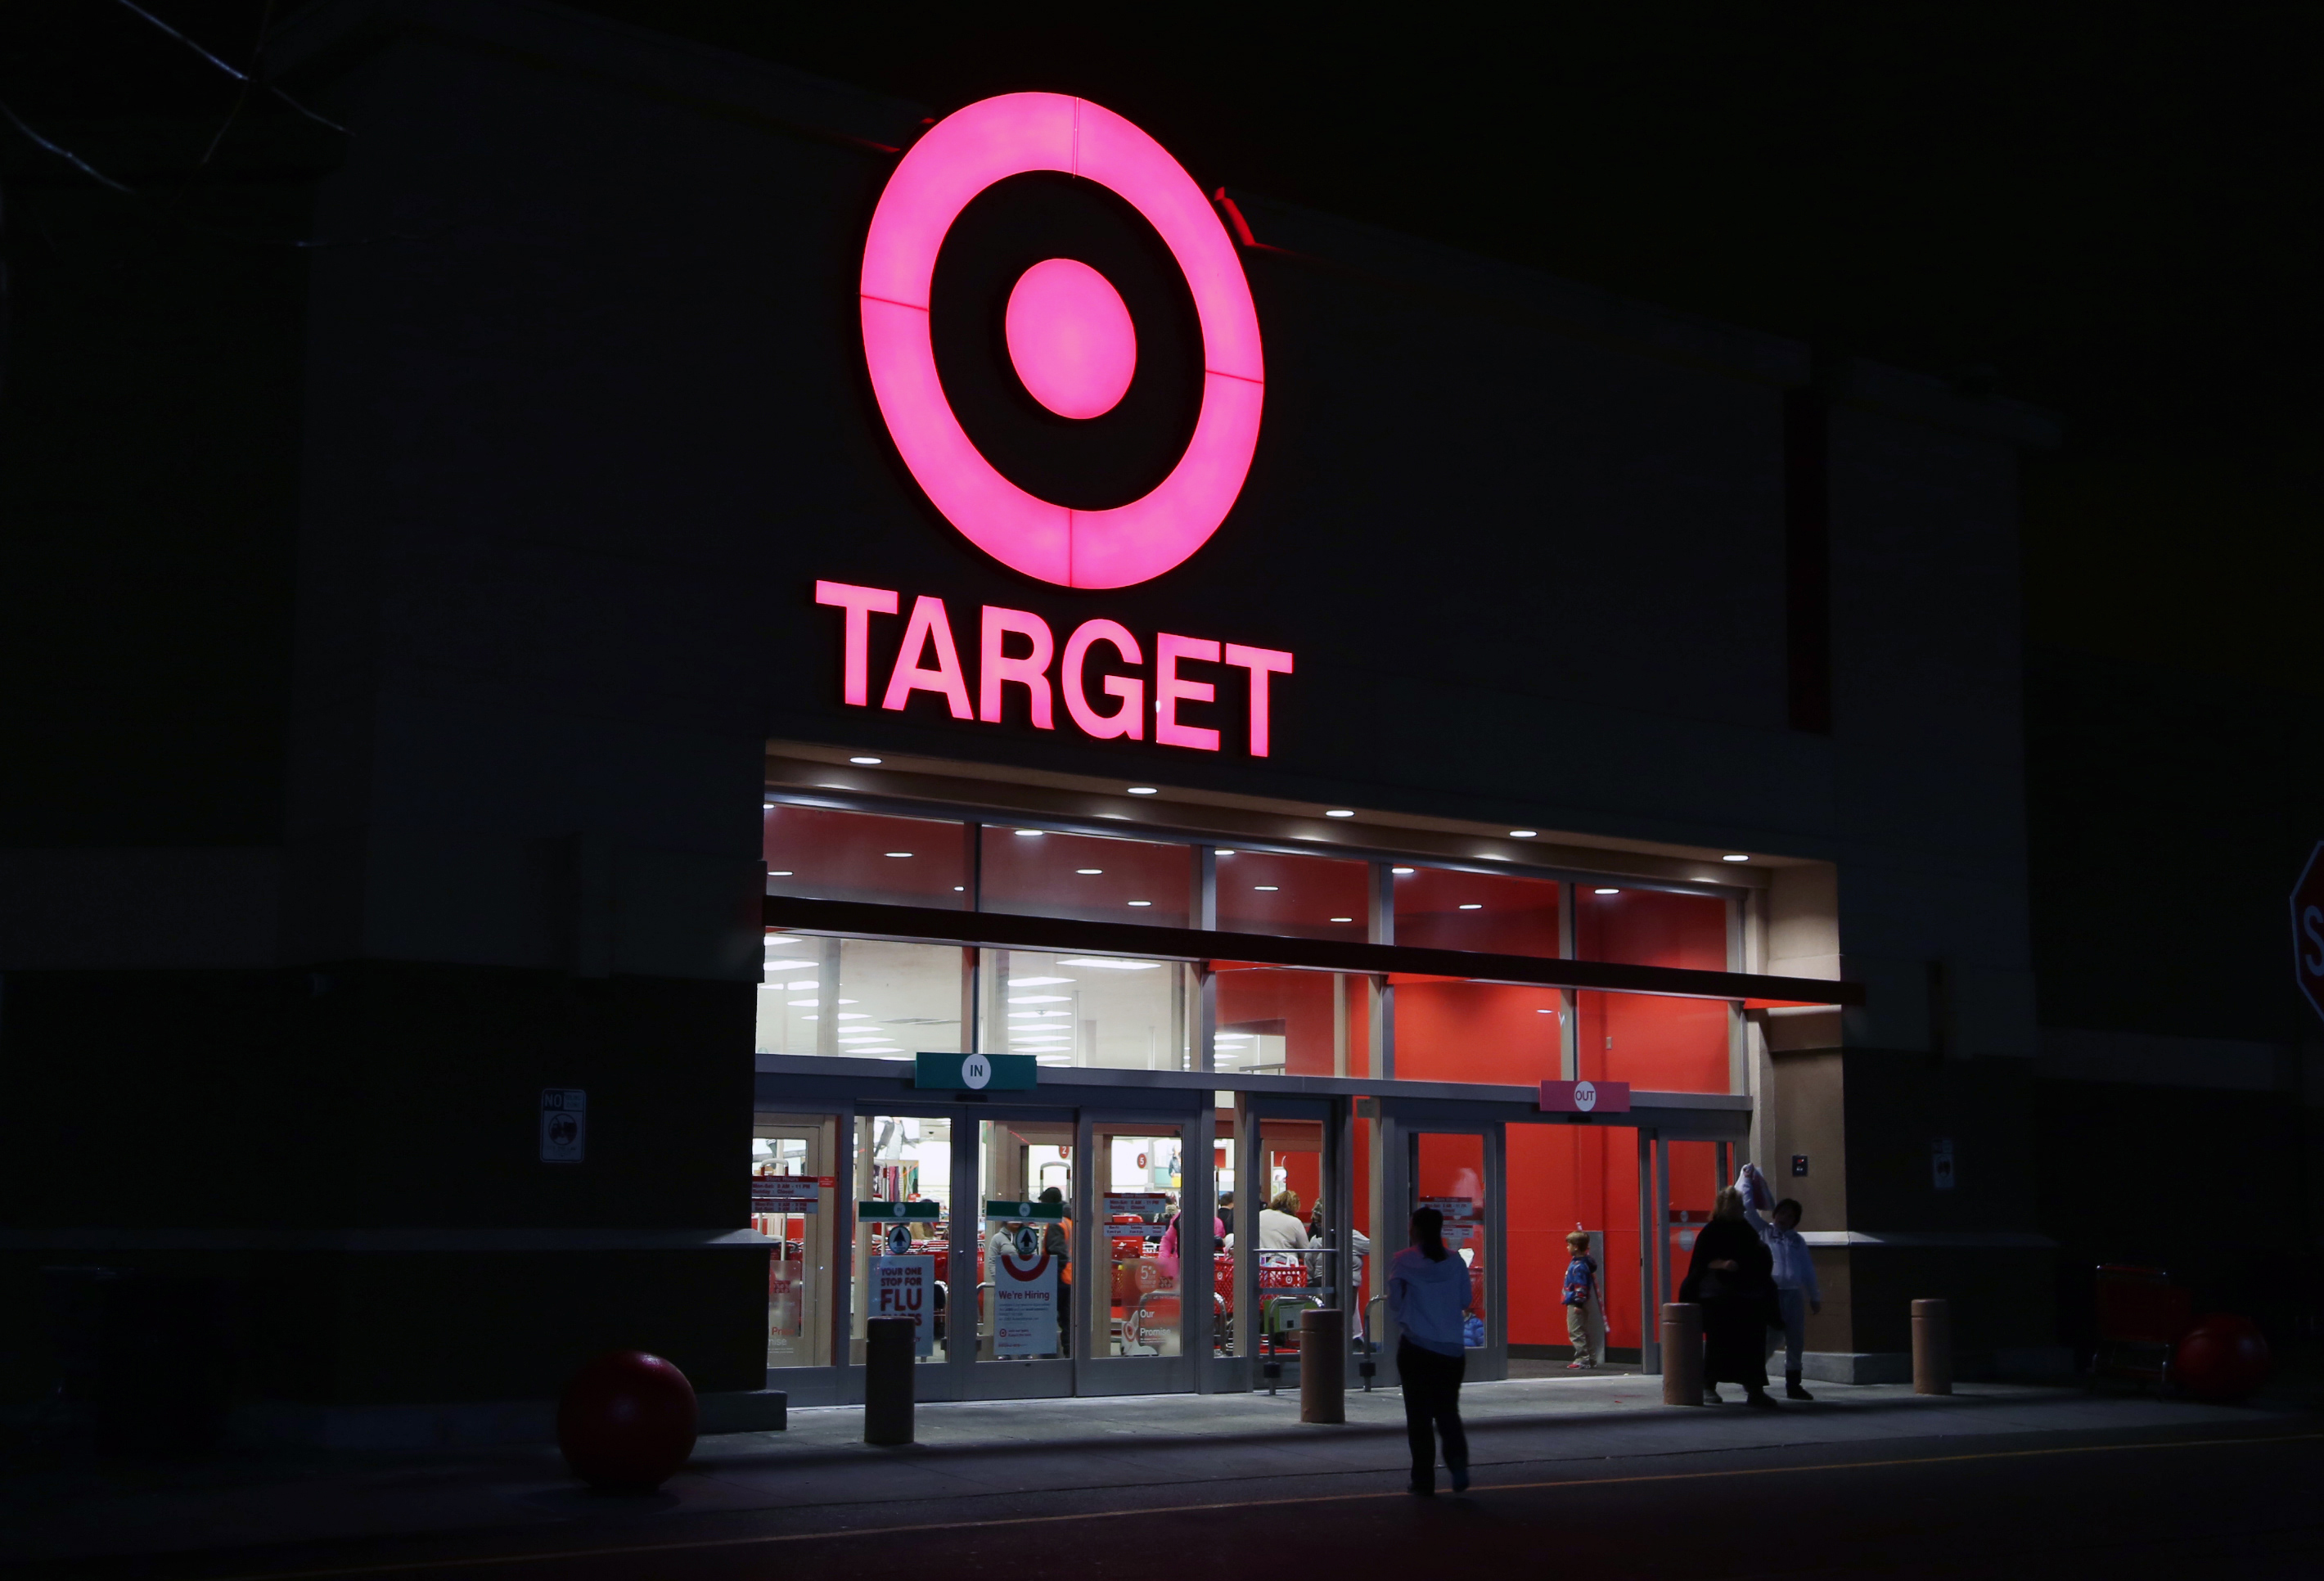 A New York City Target during the period of December 15, 2013, to December 17, 2013, when the credit card information of 40 million customers who shopped at the retailer were stolen.